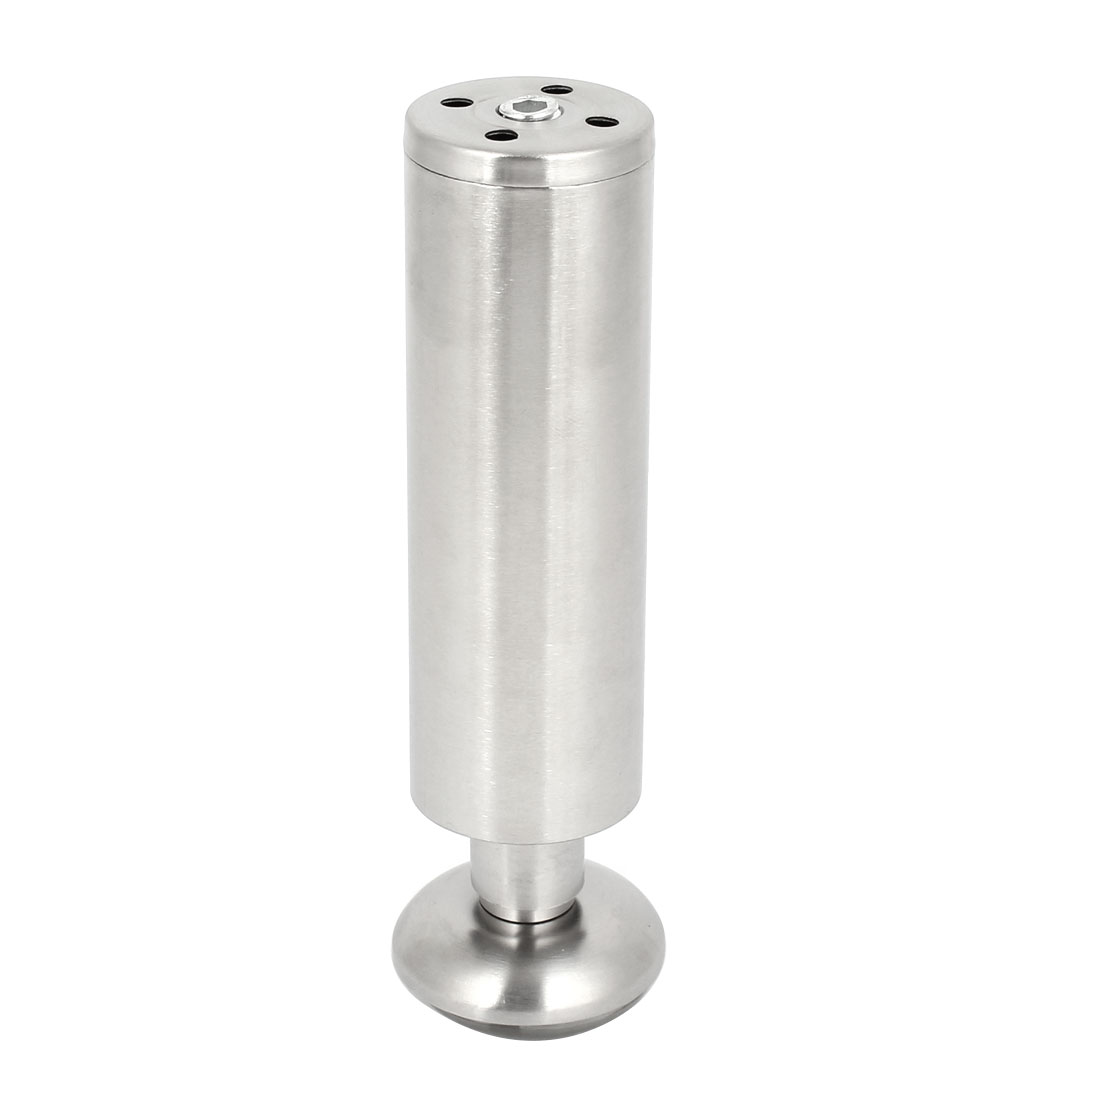 Household Rubber Base 46mmx150mm Adjustable Metal Feet Table Leg